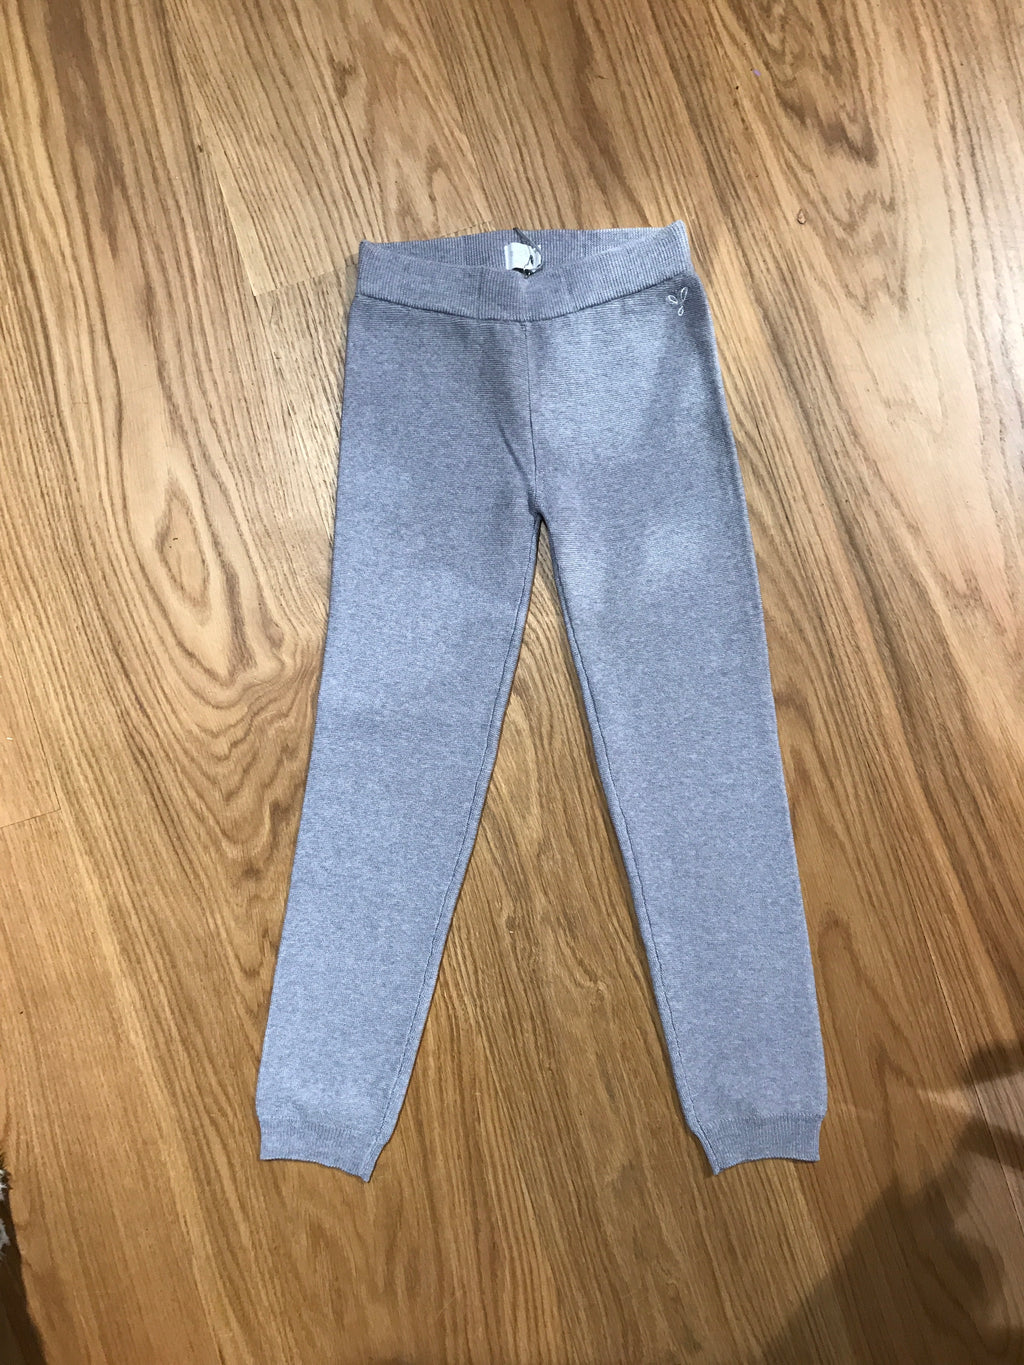 KIDS Silas Pants - Grey